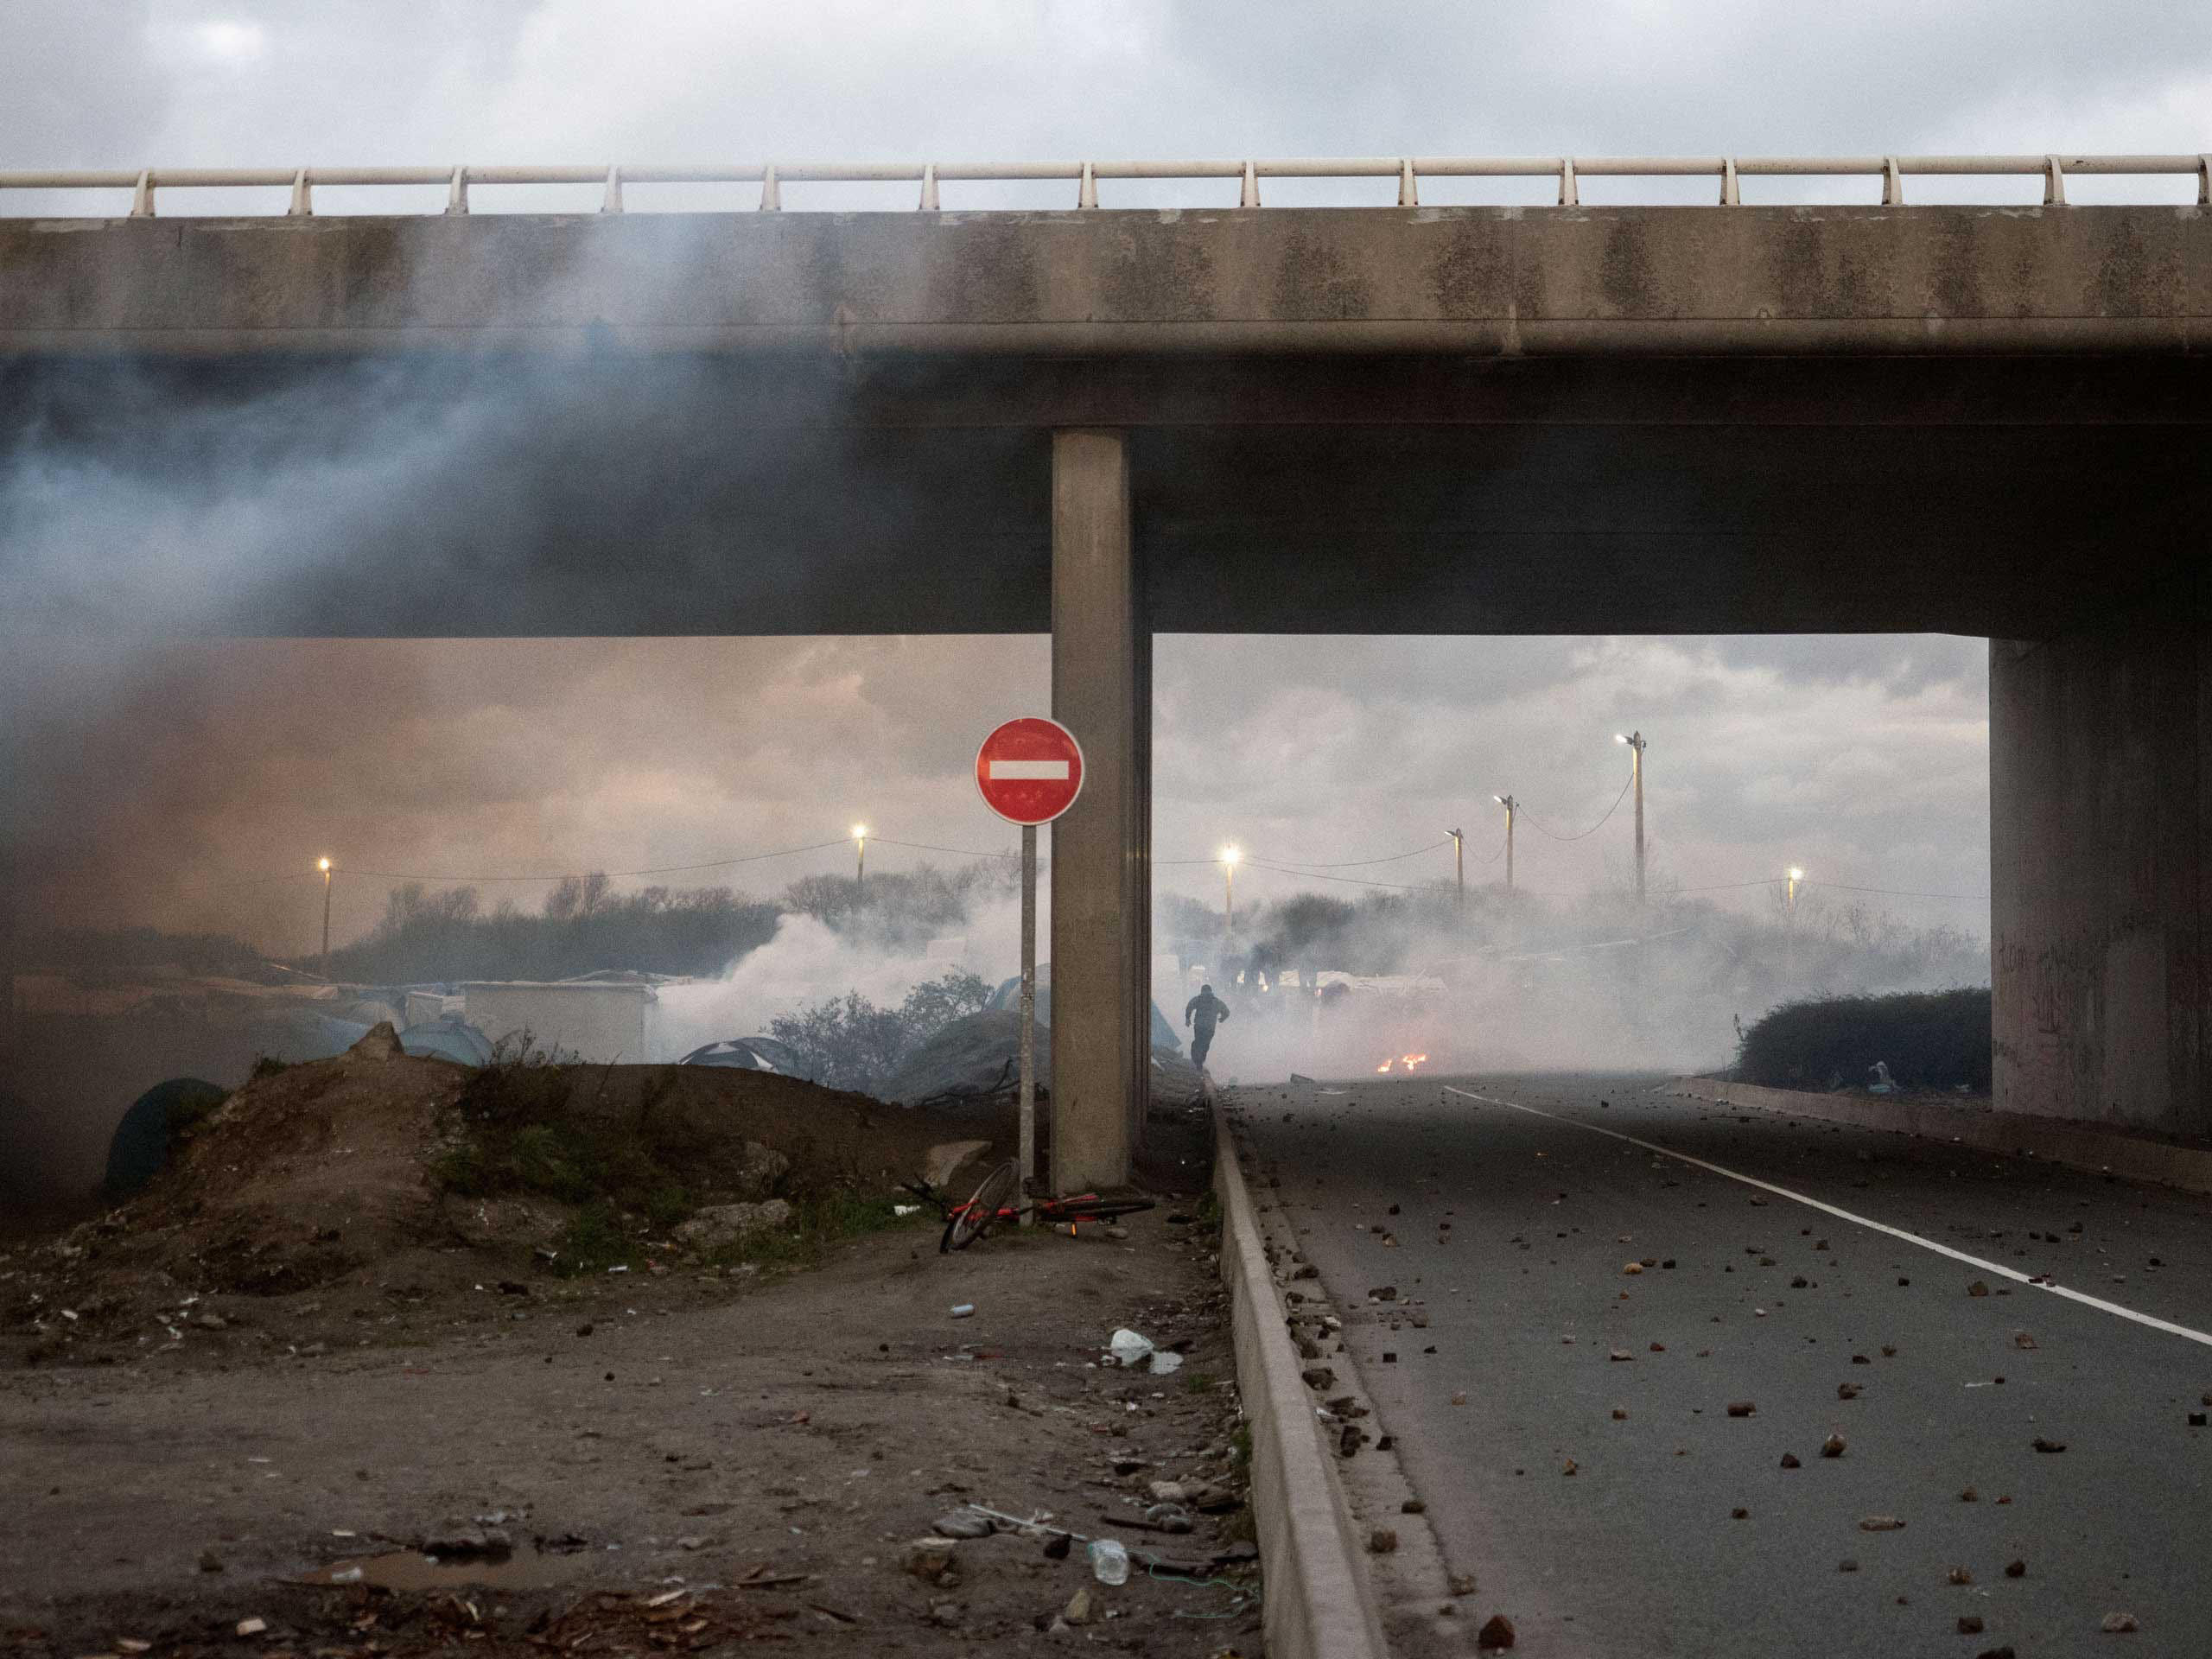 A clash between migrants and police in Calais, France, Nov. 25, 2015, where a mix of refugees, asylum seekers and economic migrants from Darfur, Afghanistan, Syria, Iraq, and Eritrea live in the shantytown known as the  jungle.